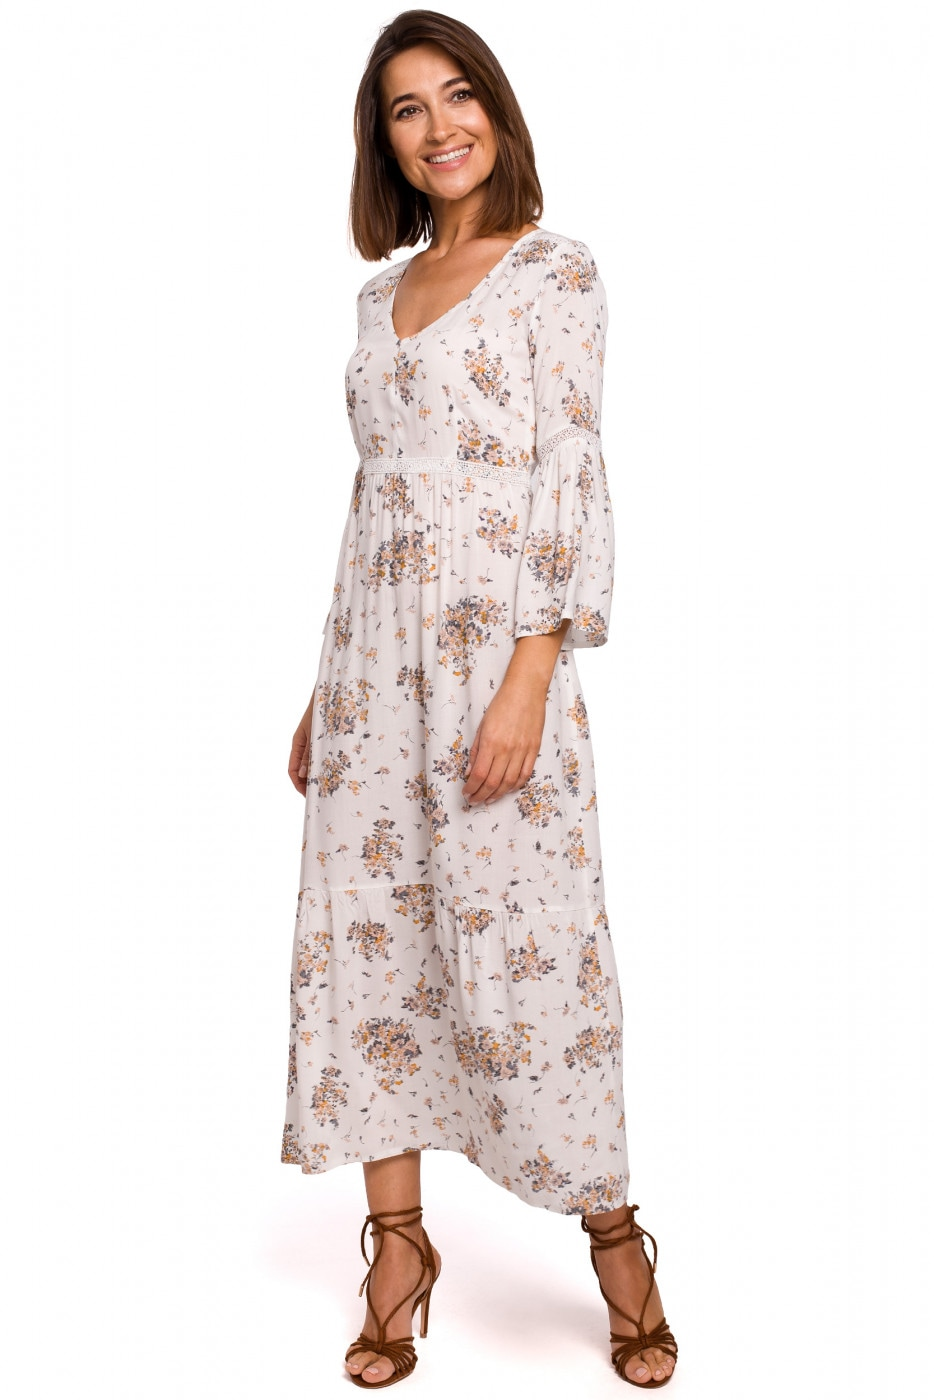 Stylove Woman's Dress S222 Model 3